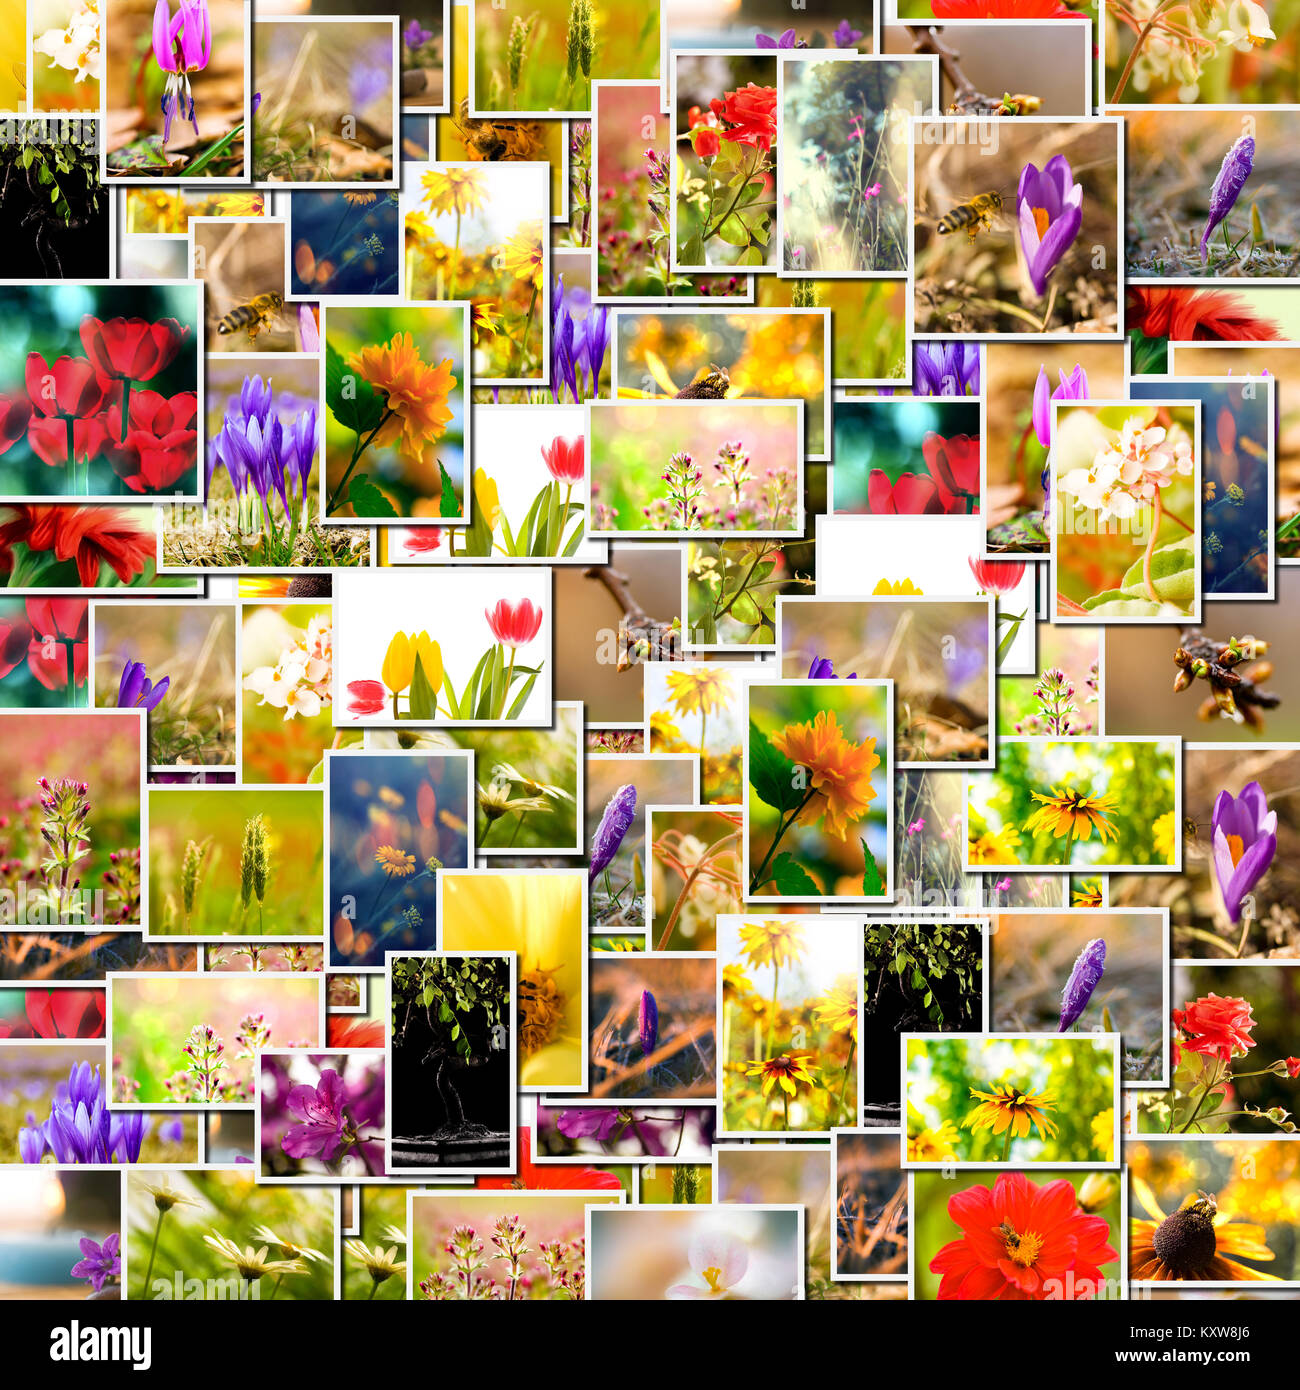 Flower collage. spring background, floral montage from several images Stock Photo